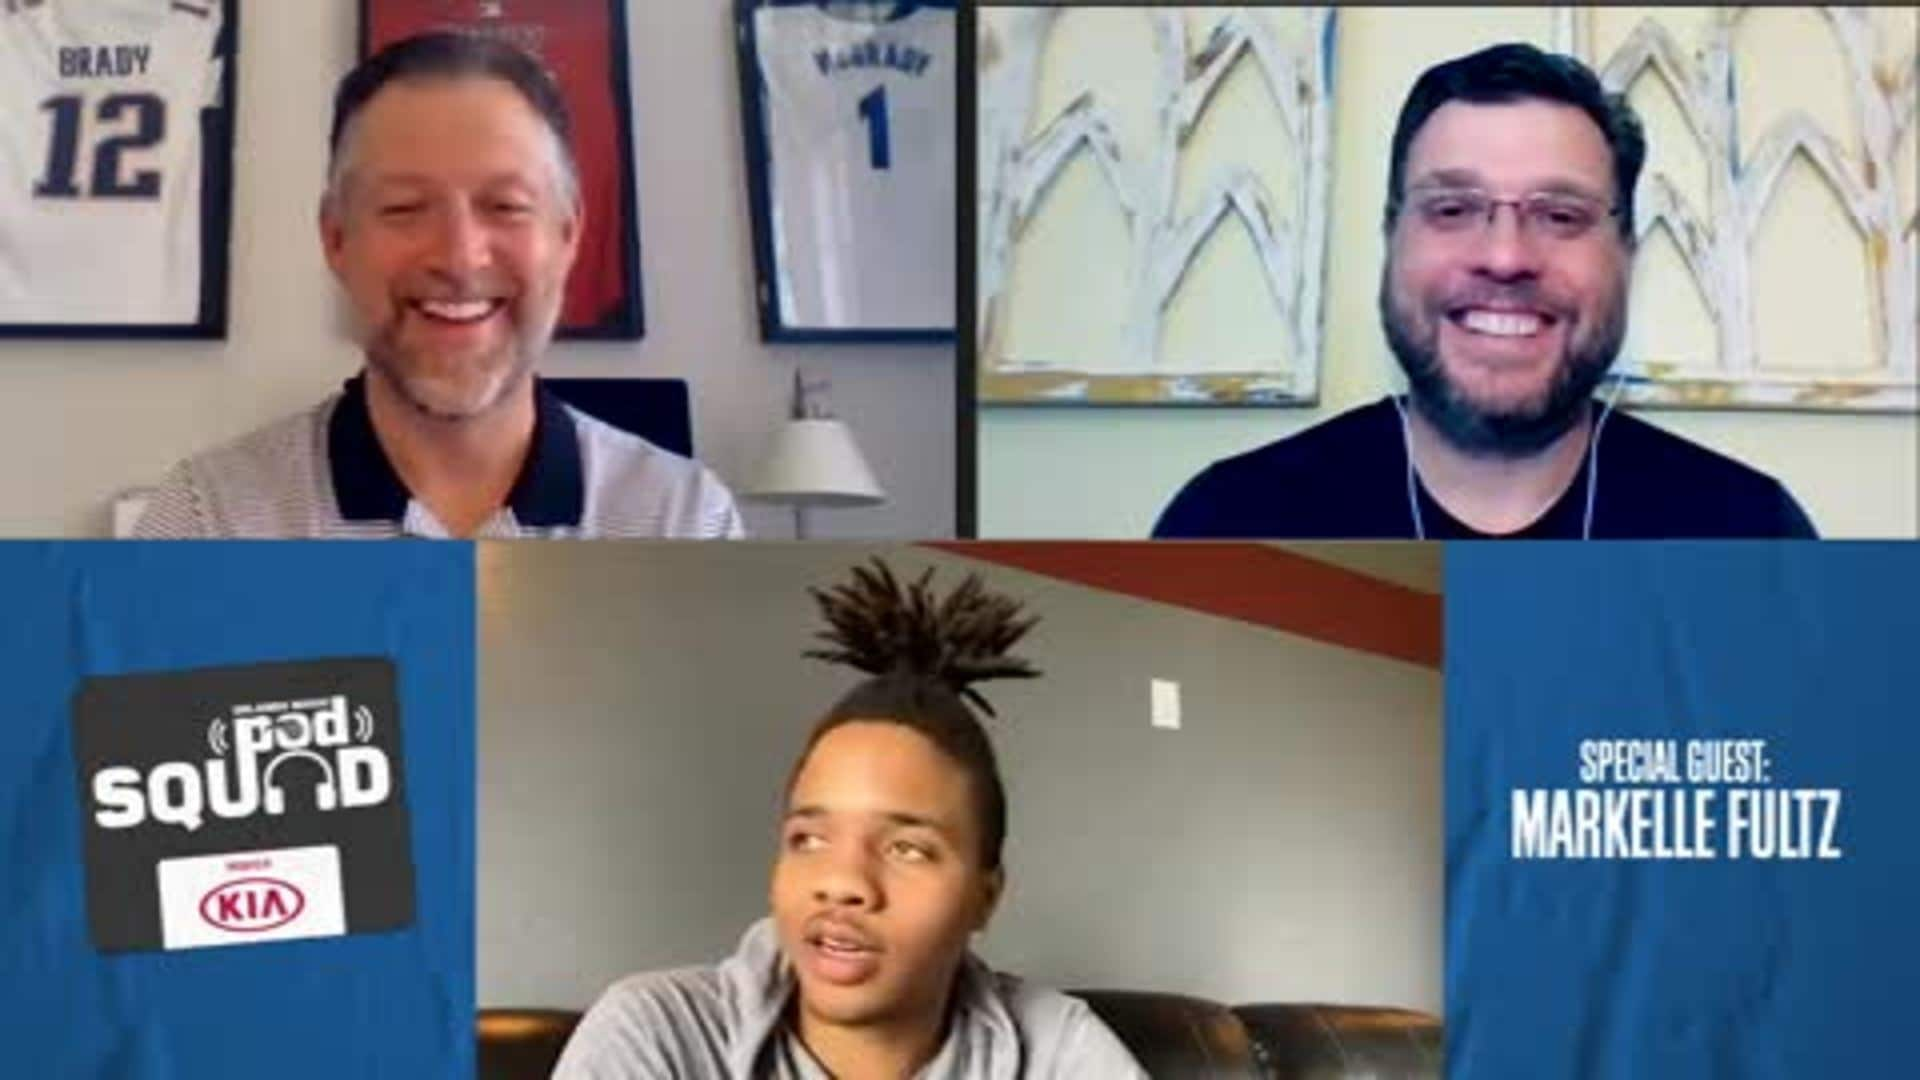 Orlando Magic Pod Squad: Markelle Fultz